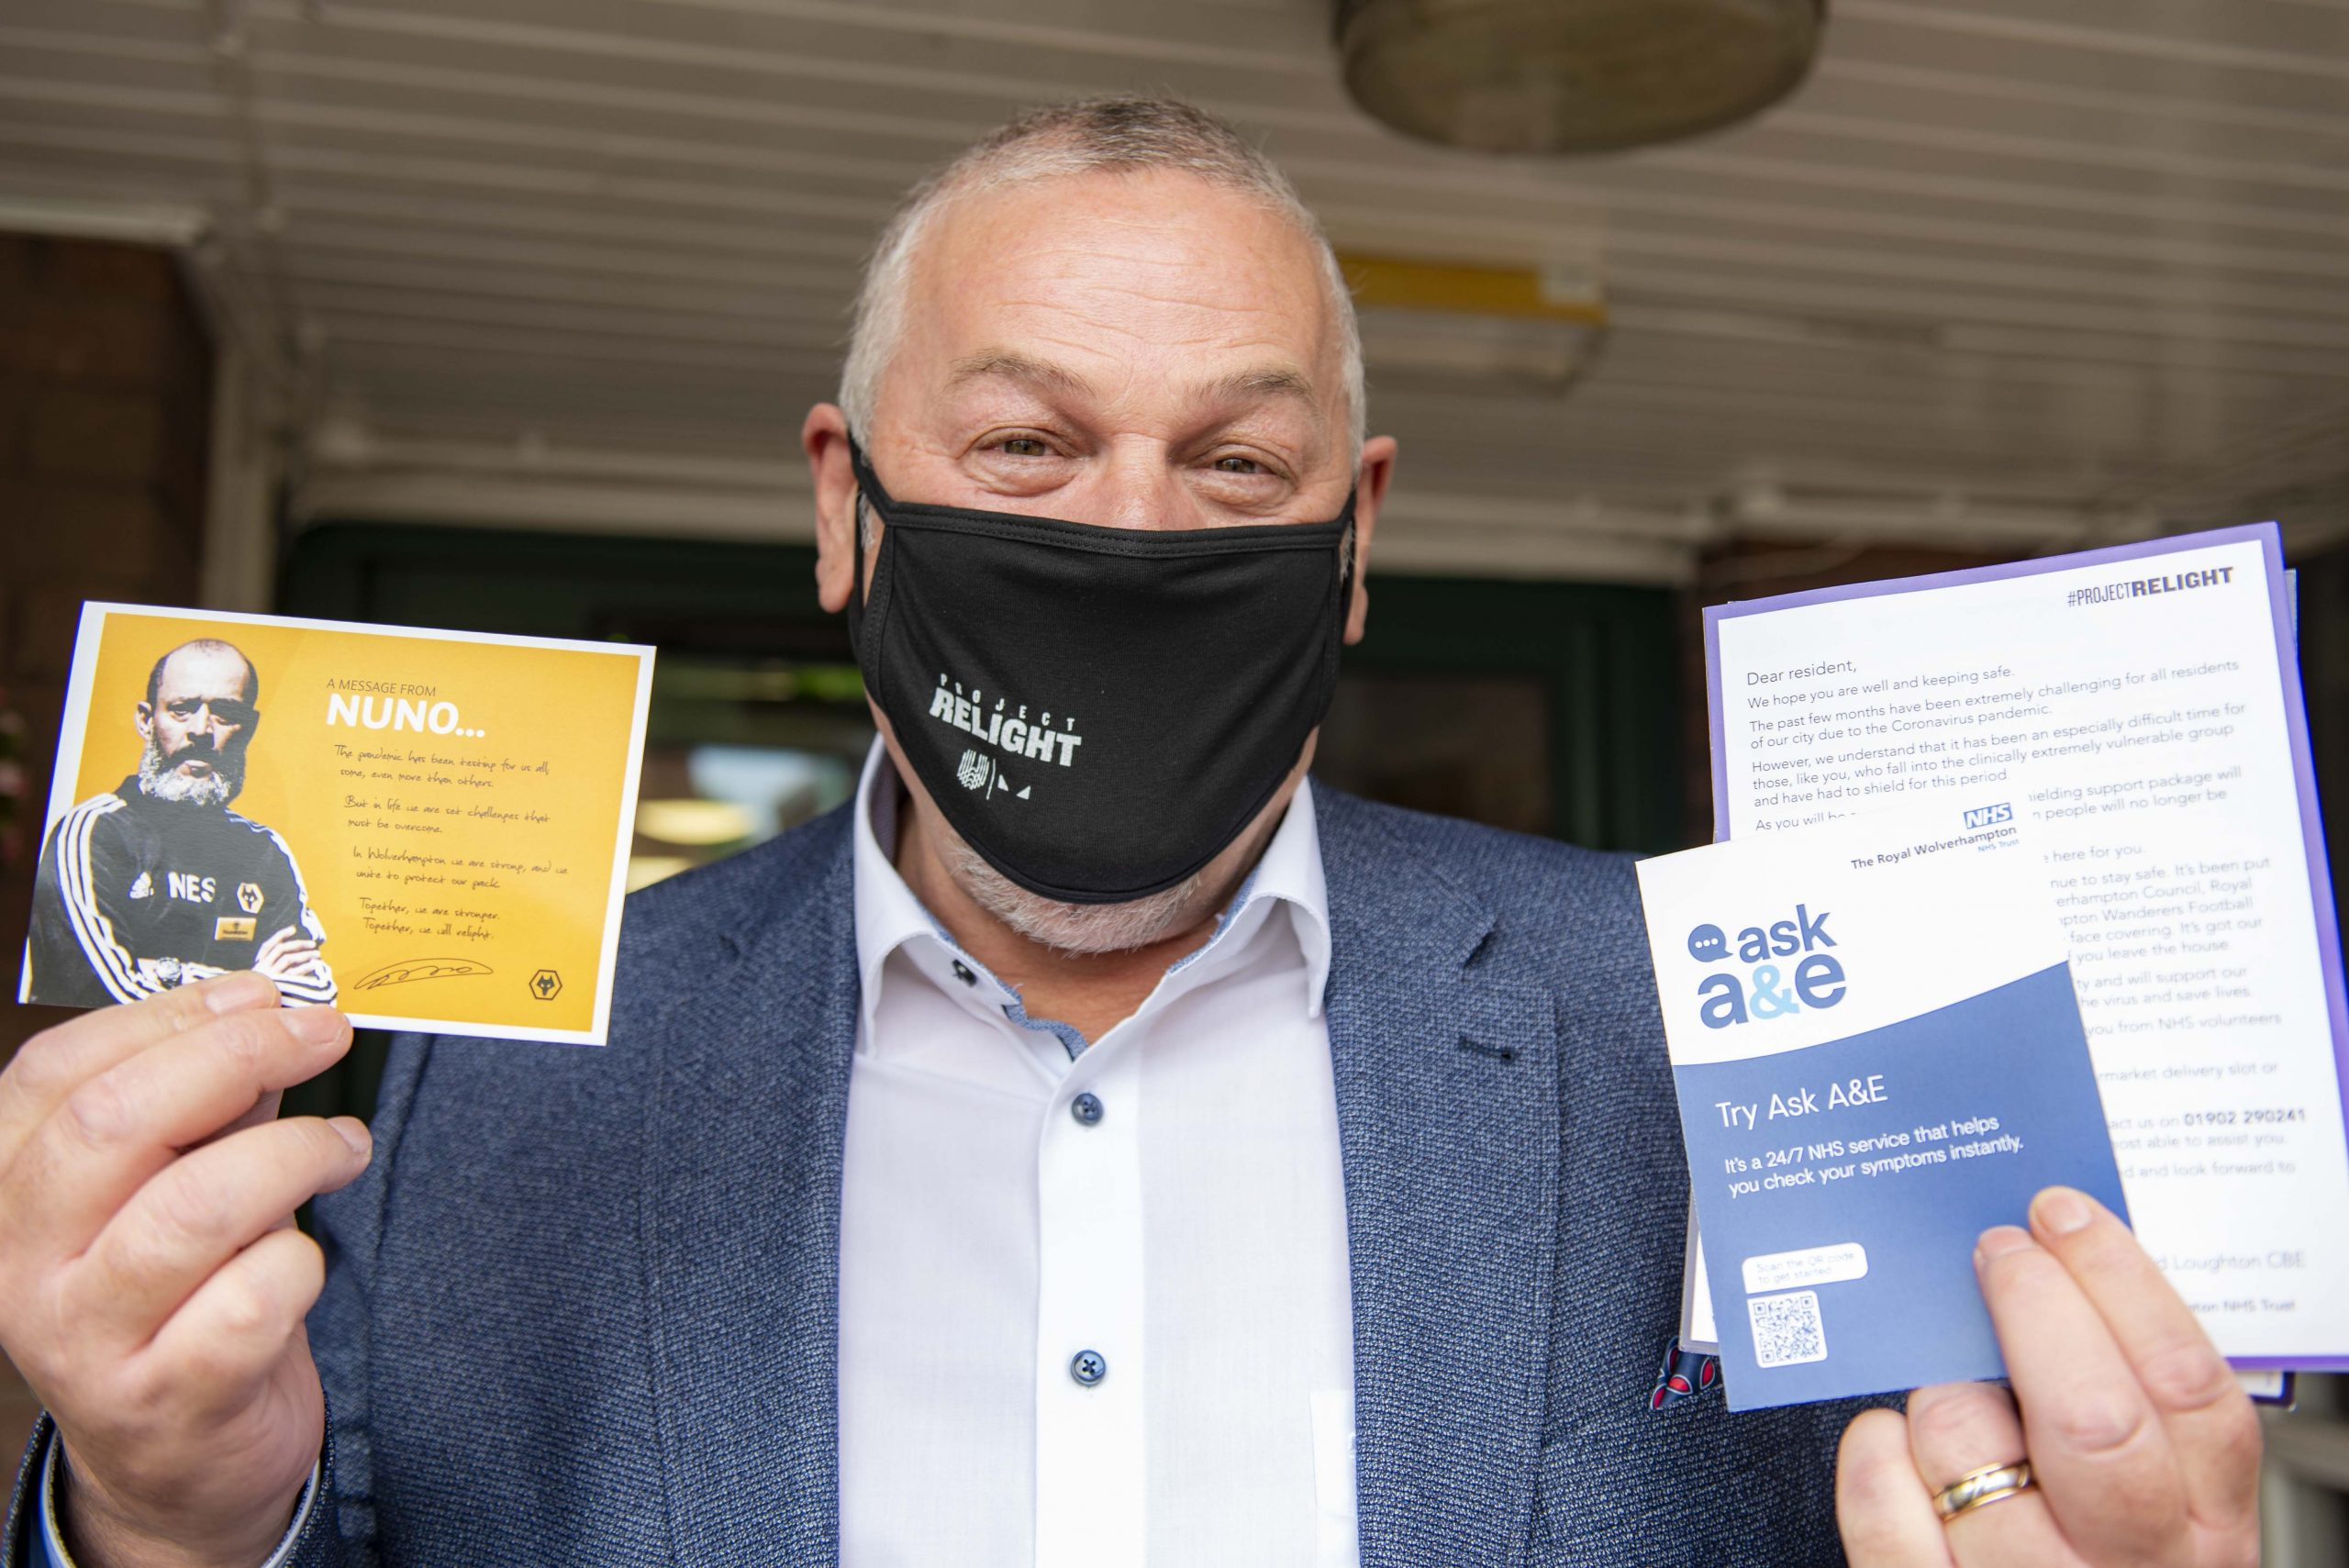 Covid 'care packs' to be sent to most vulnerable residents